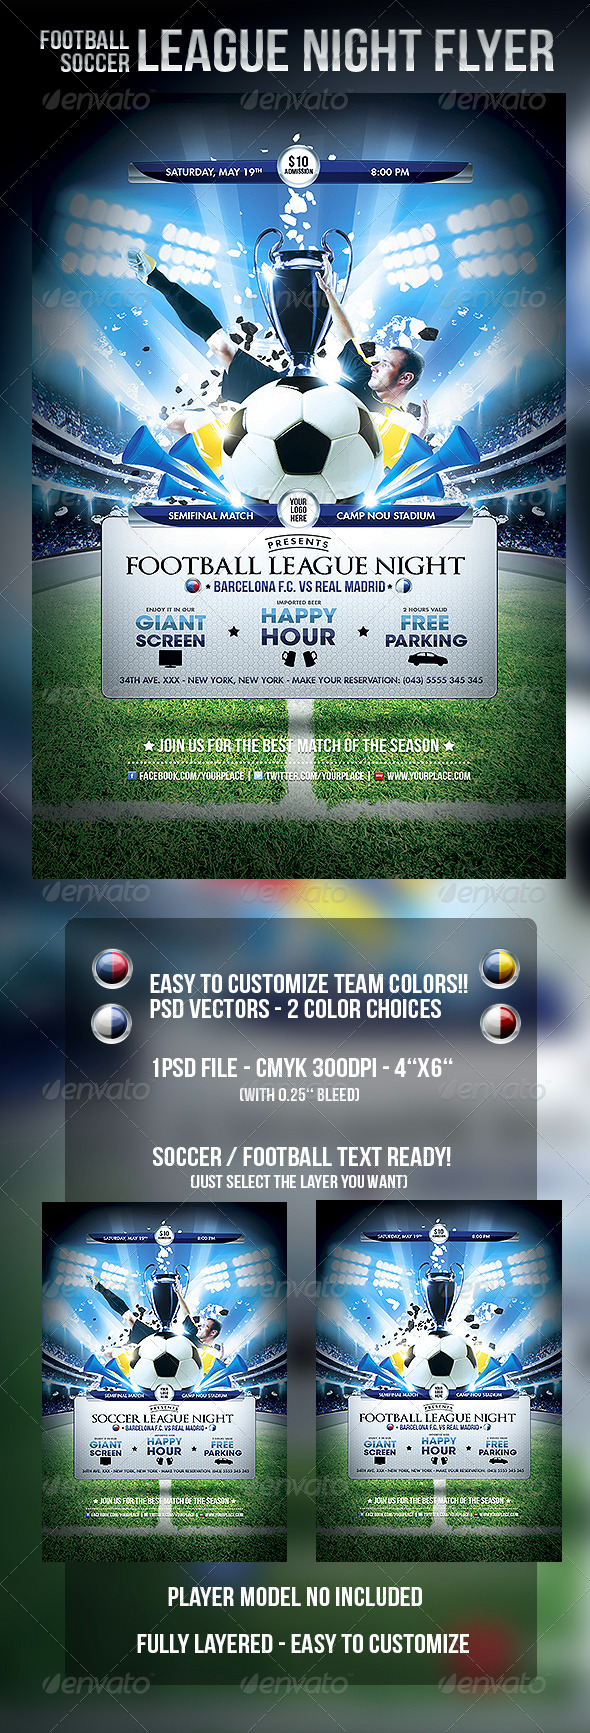 Football Soccer League Night Flyer Template By Odindesign